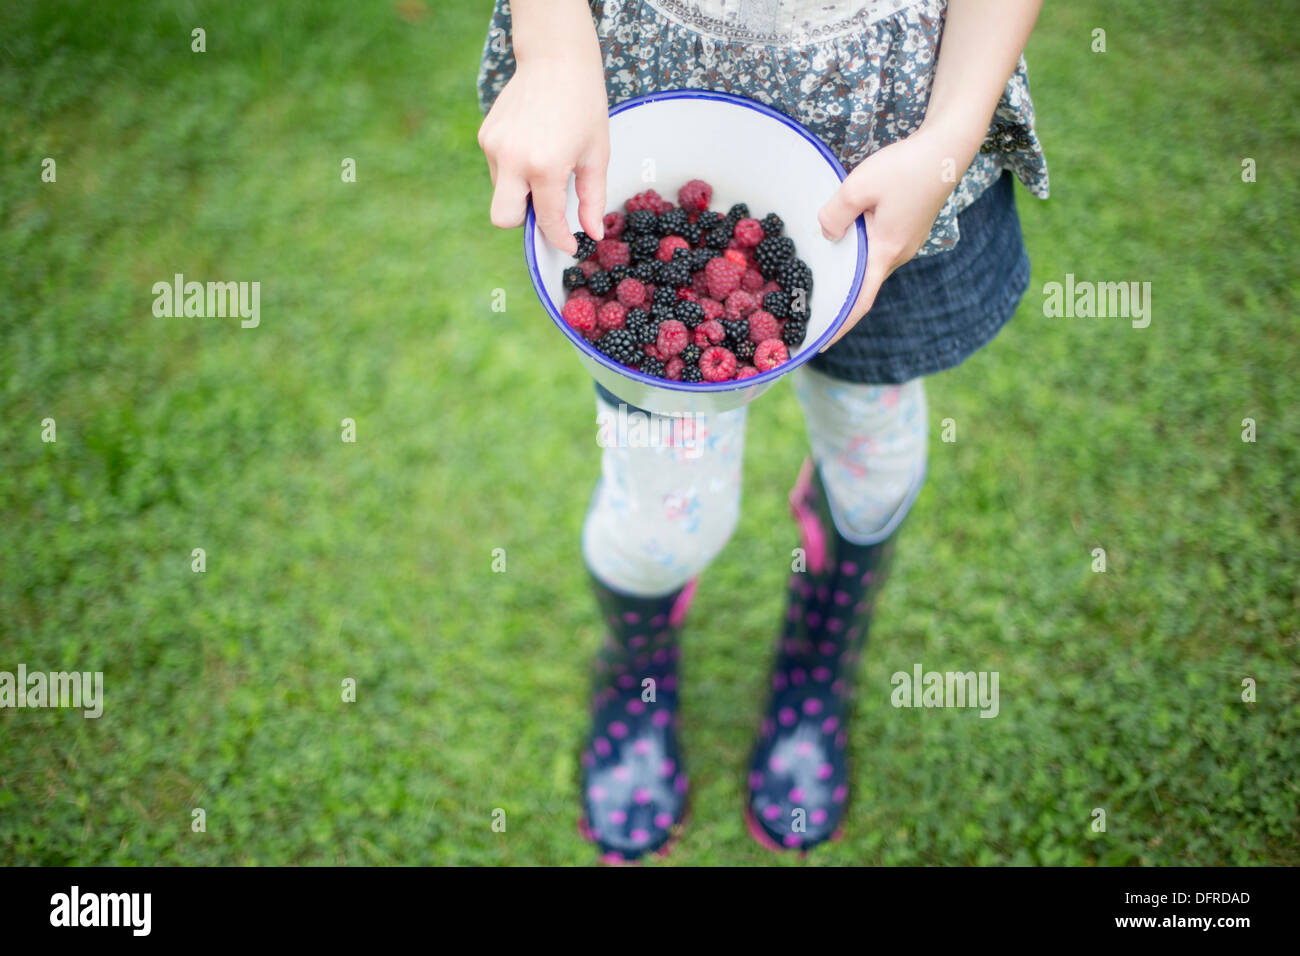 Girl Holding bol rempli de Framboises et mûres Photo Stock